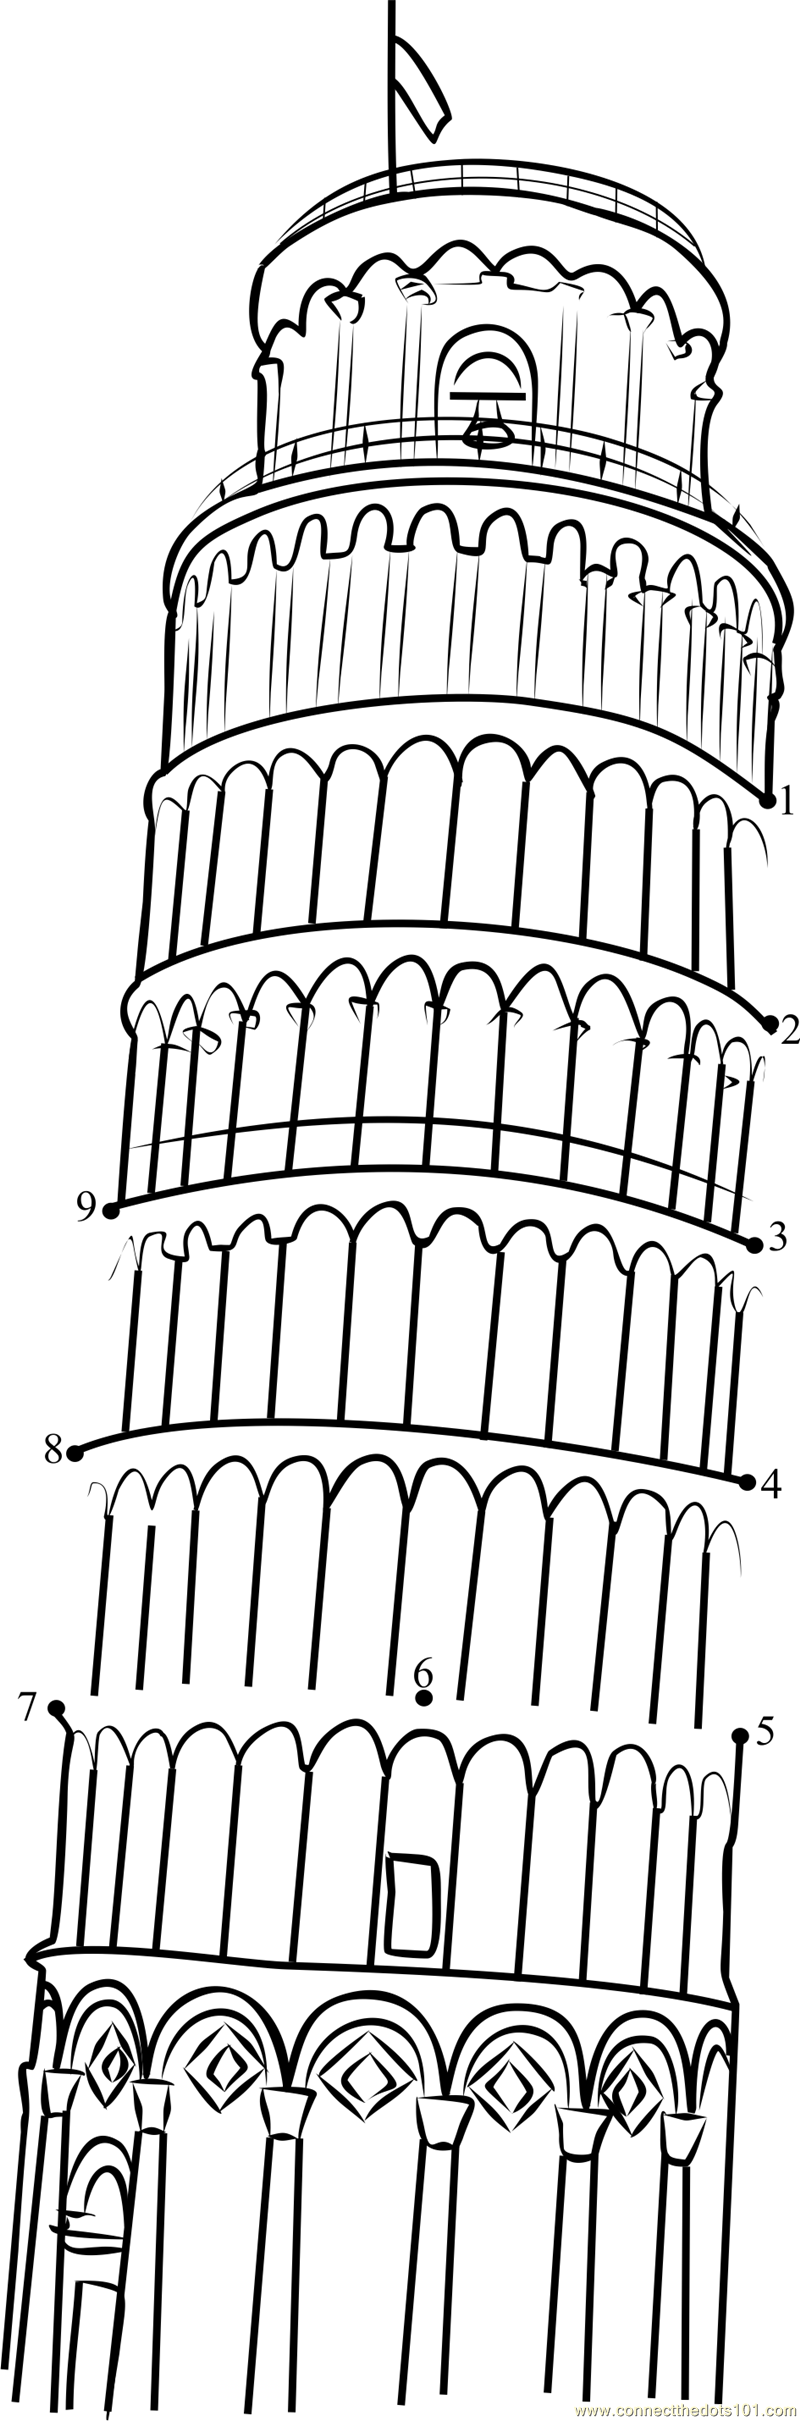 Free Coloring Pages Of Leaning Tower Of Pisa Leaning Tower Of Pisa Coloring Page